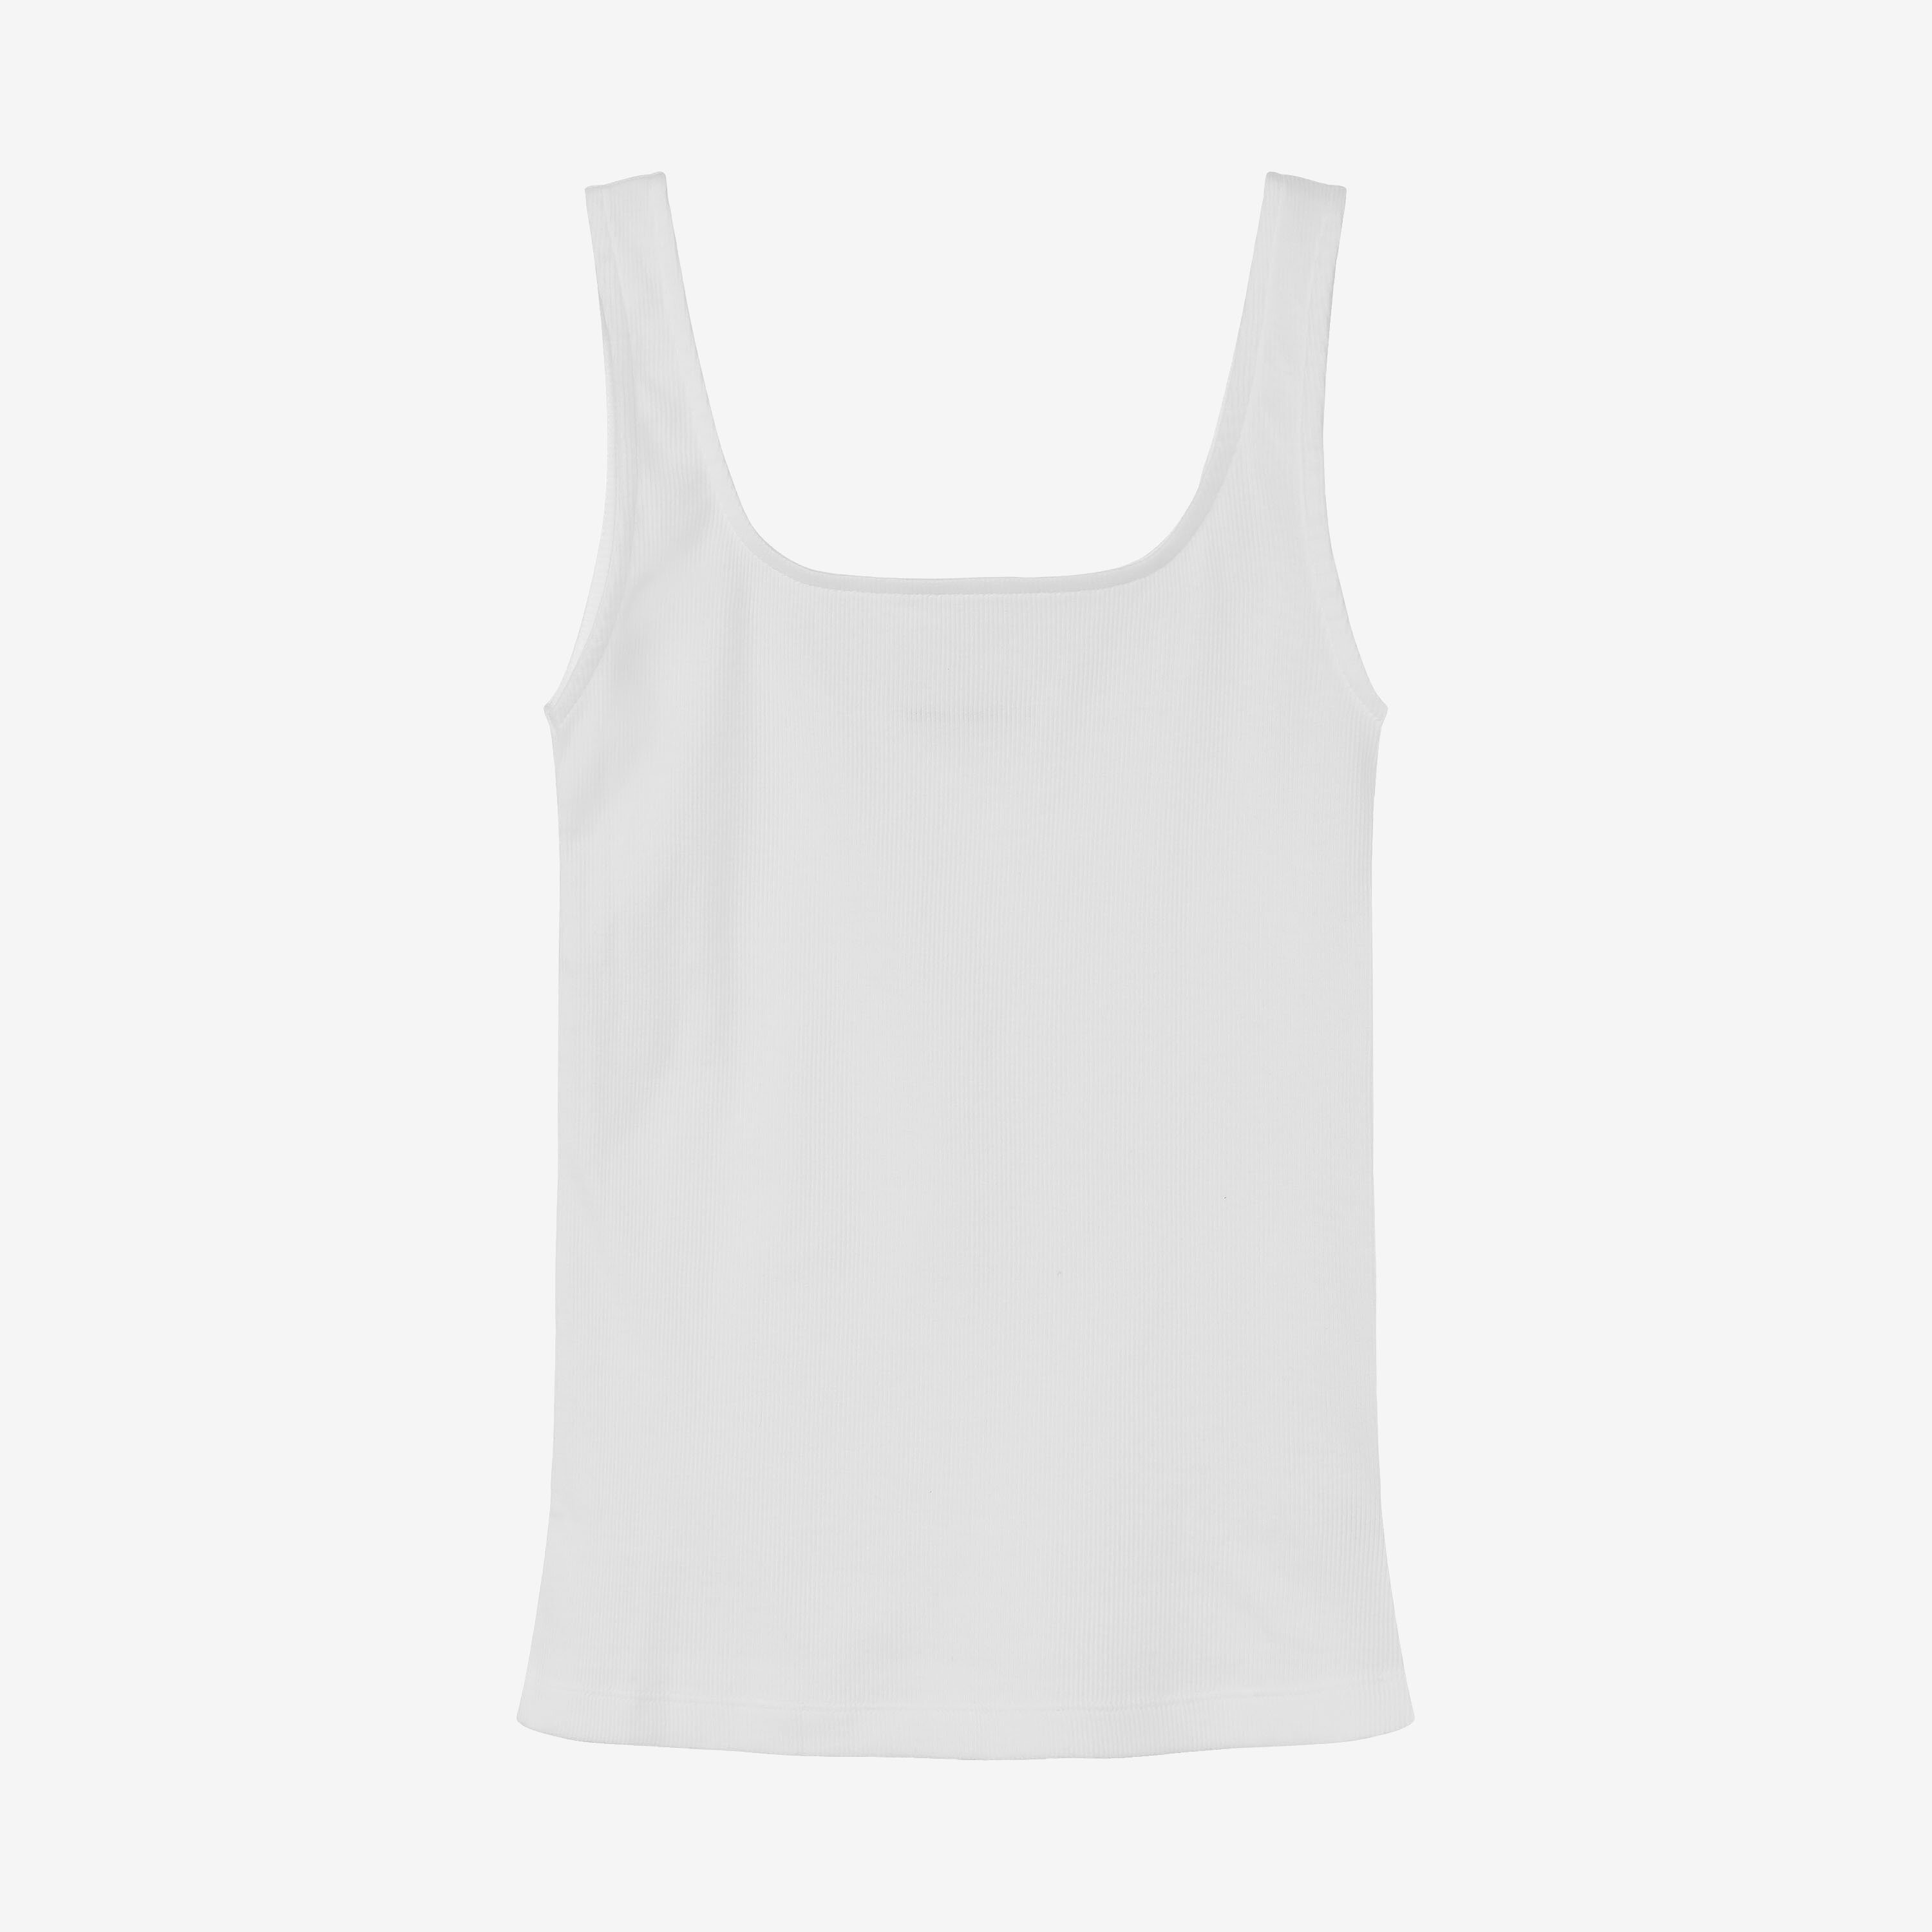 632-01_Tank_ribbed_white_CO-A